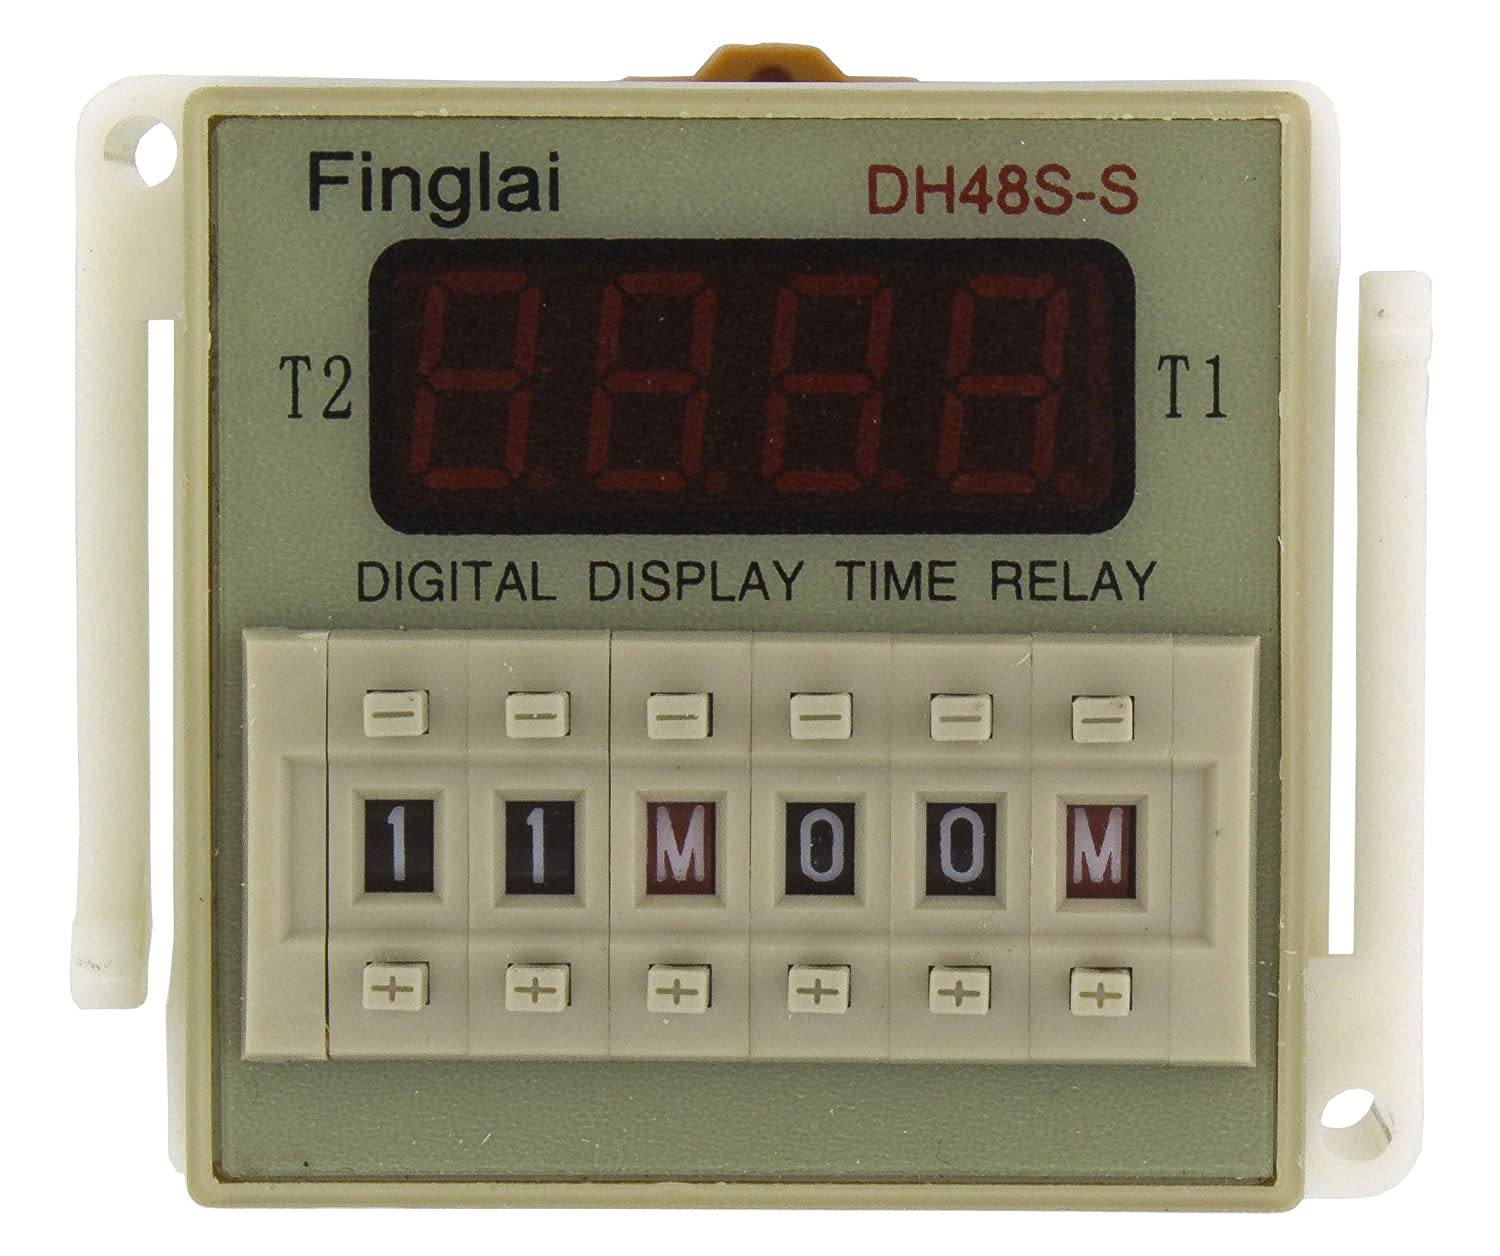 DH48S-S AC 110V repeat cycle SPDT time relay with socket DH48S series 110VAC delay timer with base